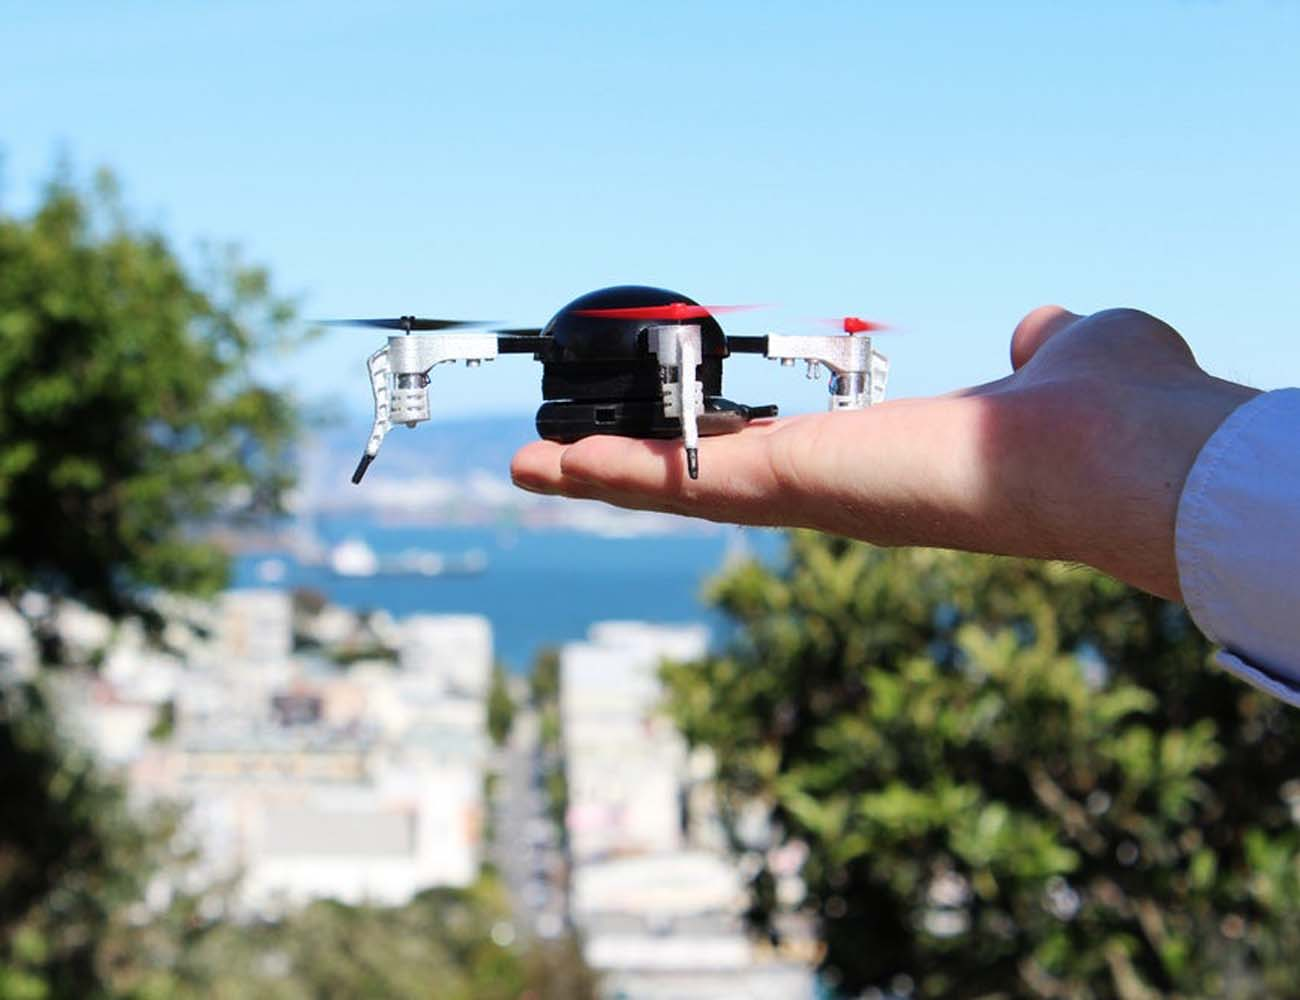 Micro+Drone+3.0+%26%238211%3B+Flight+In+The+Palm+Of+Your+Hand